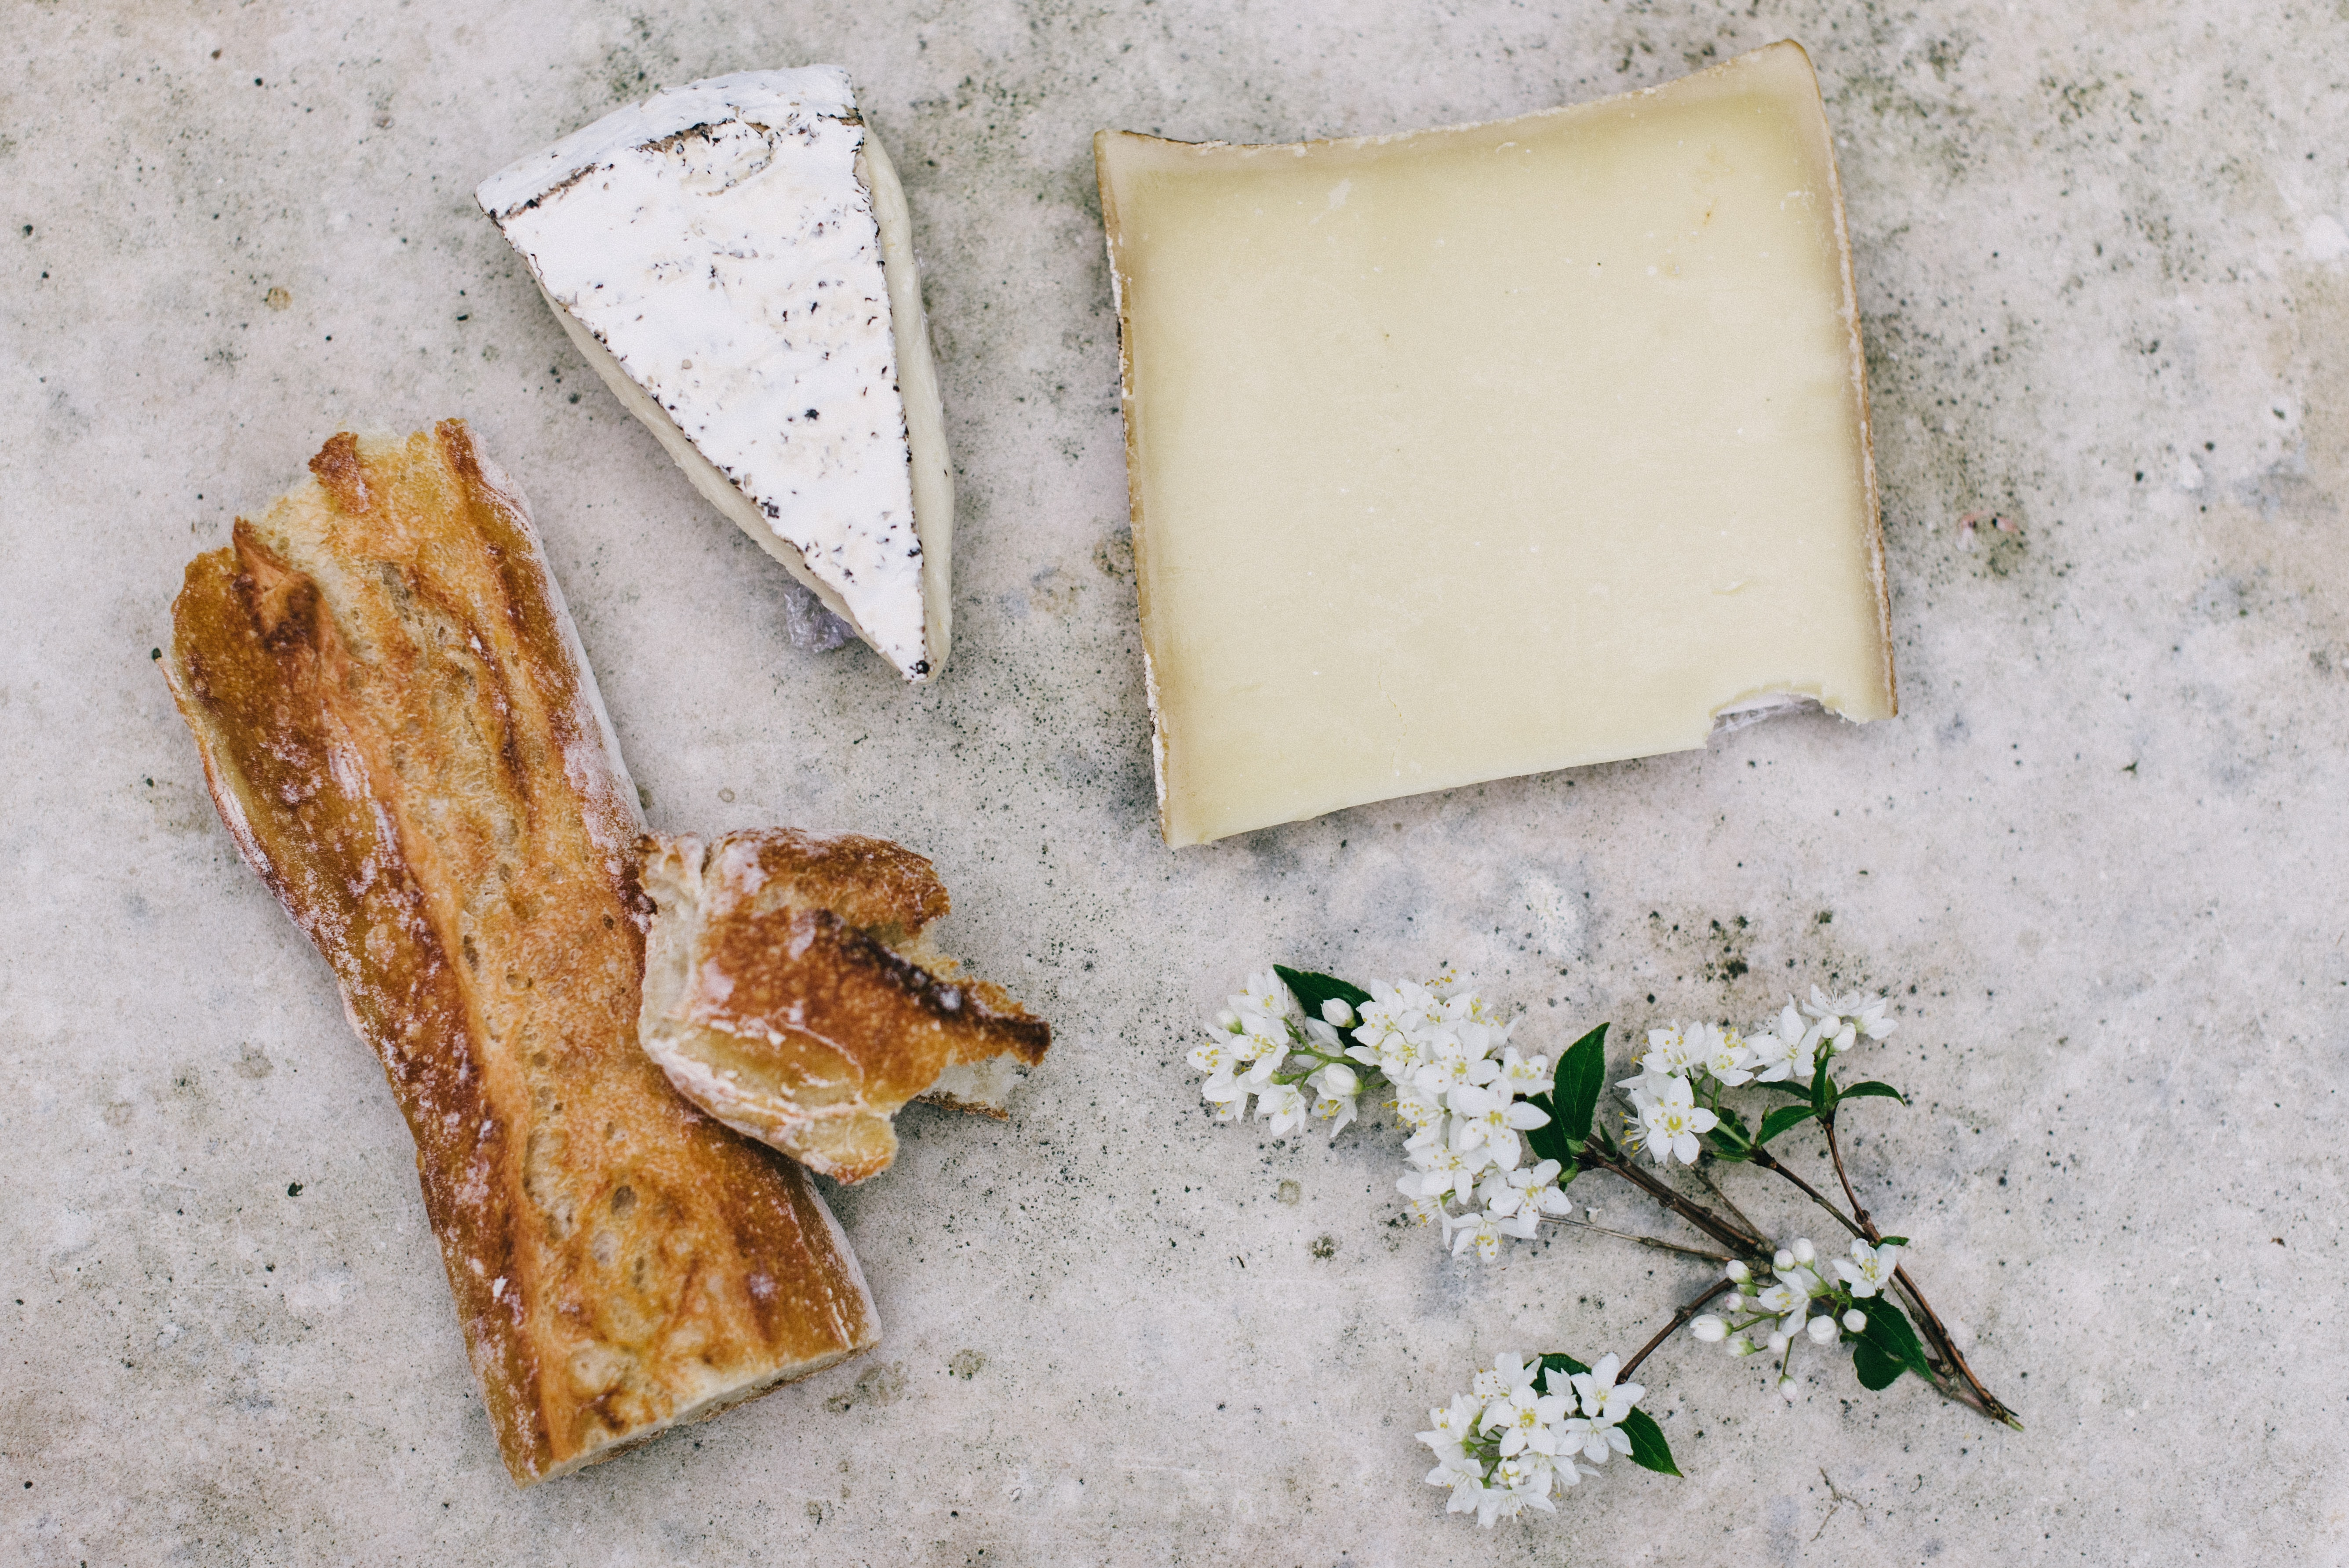 An overhead shot of a baguette, two pieces of cheese and branchlet with small white flowers